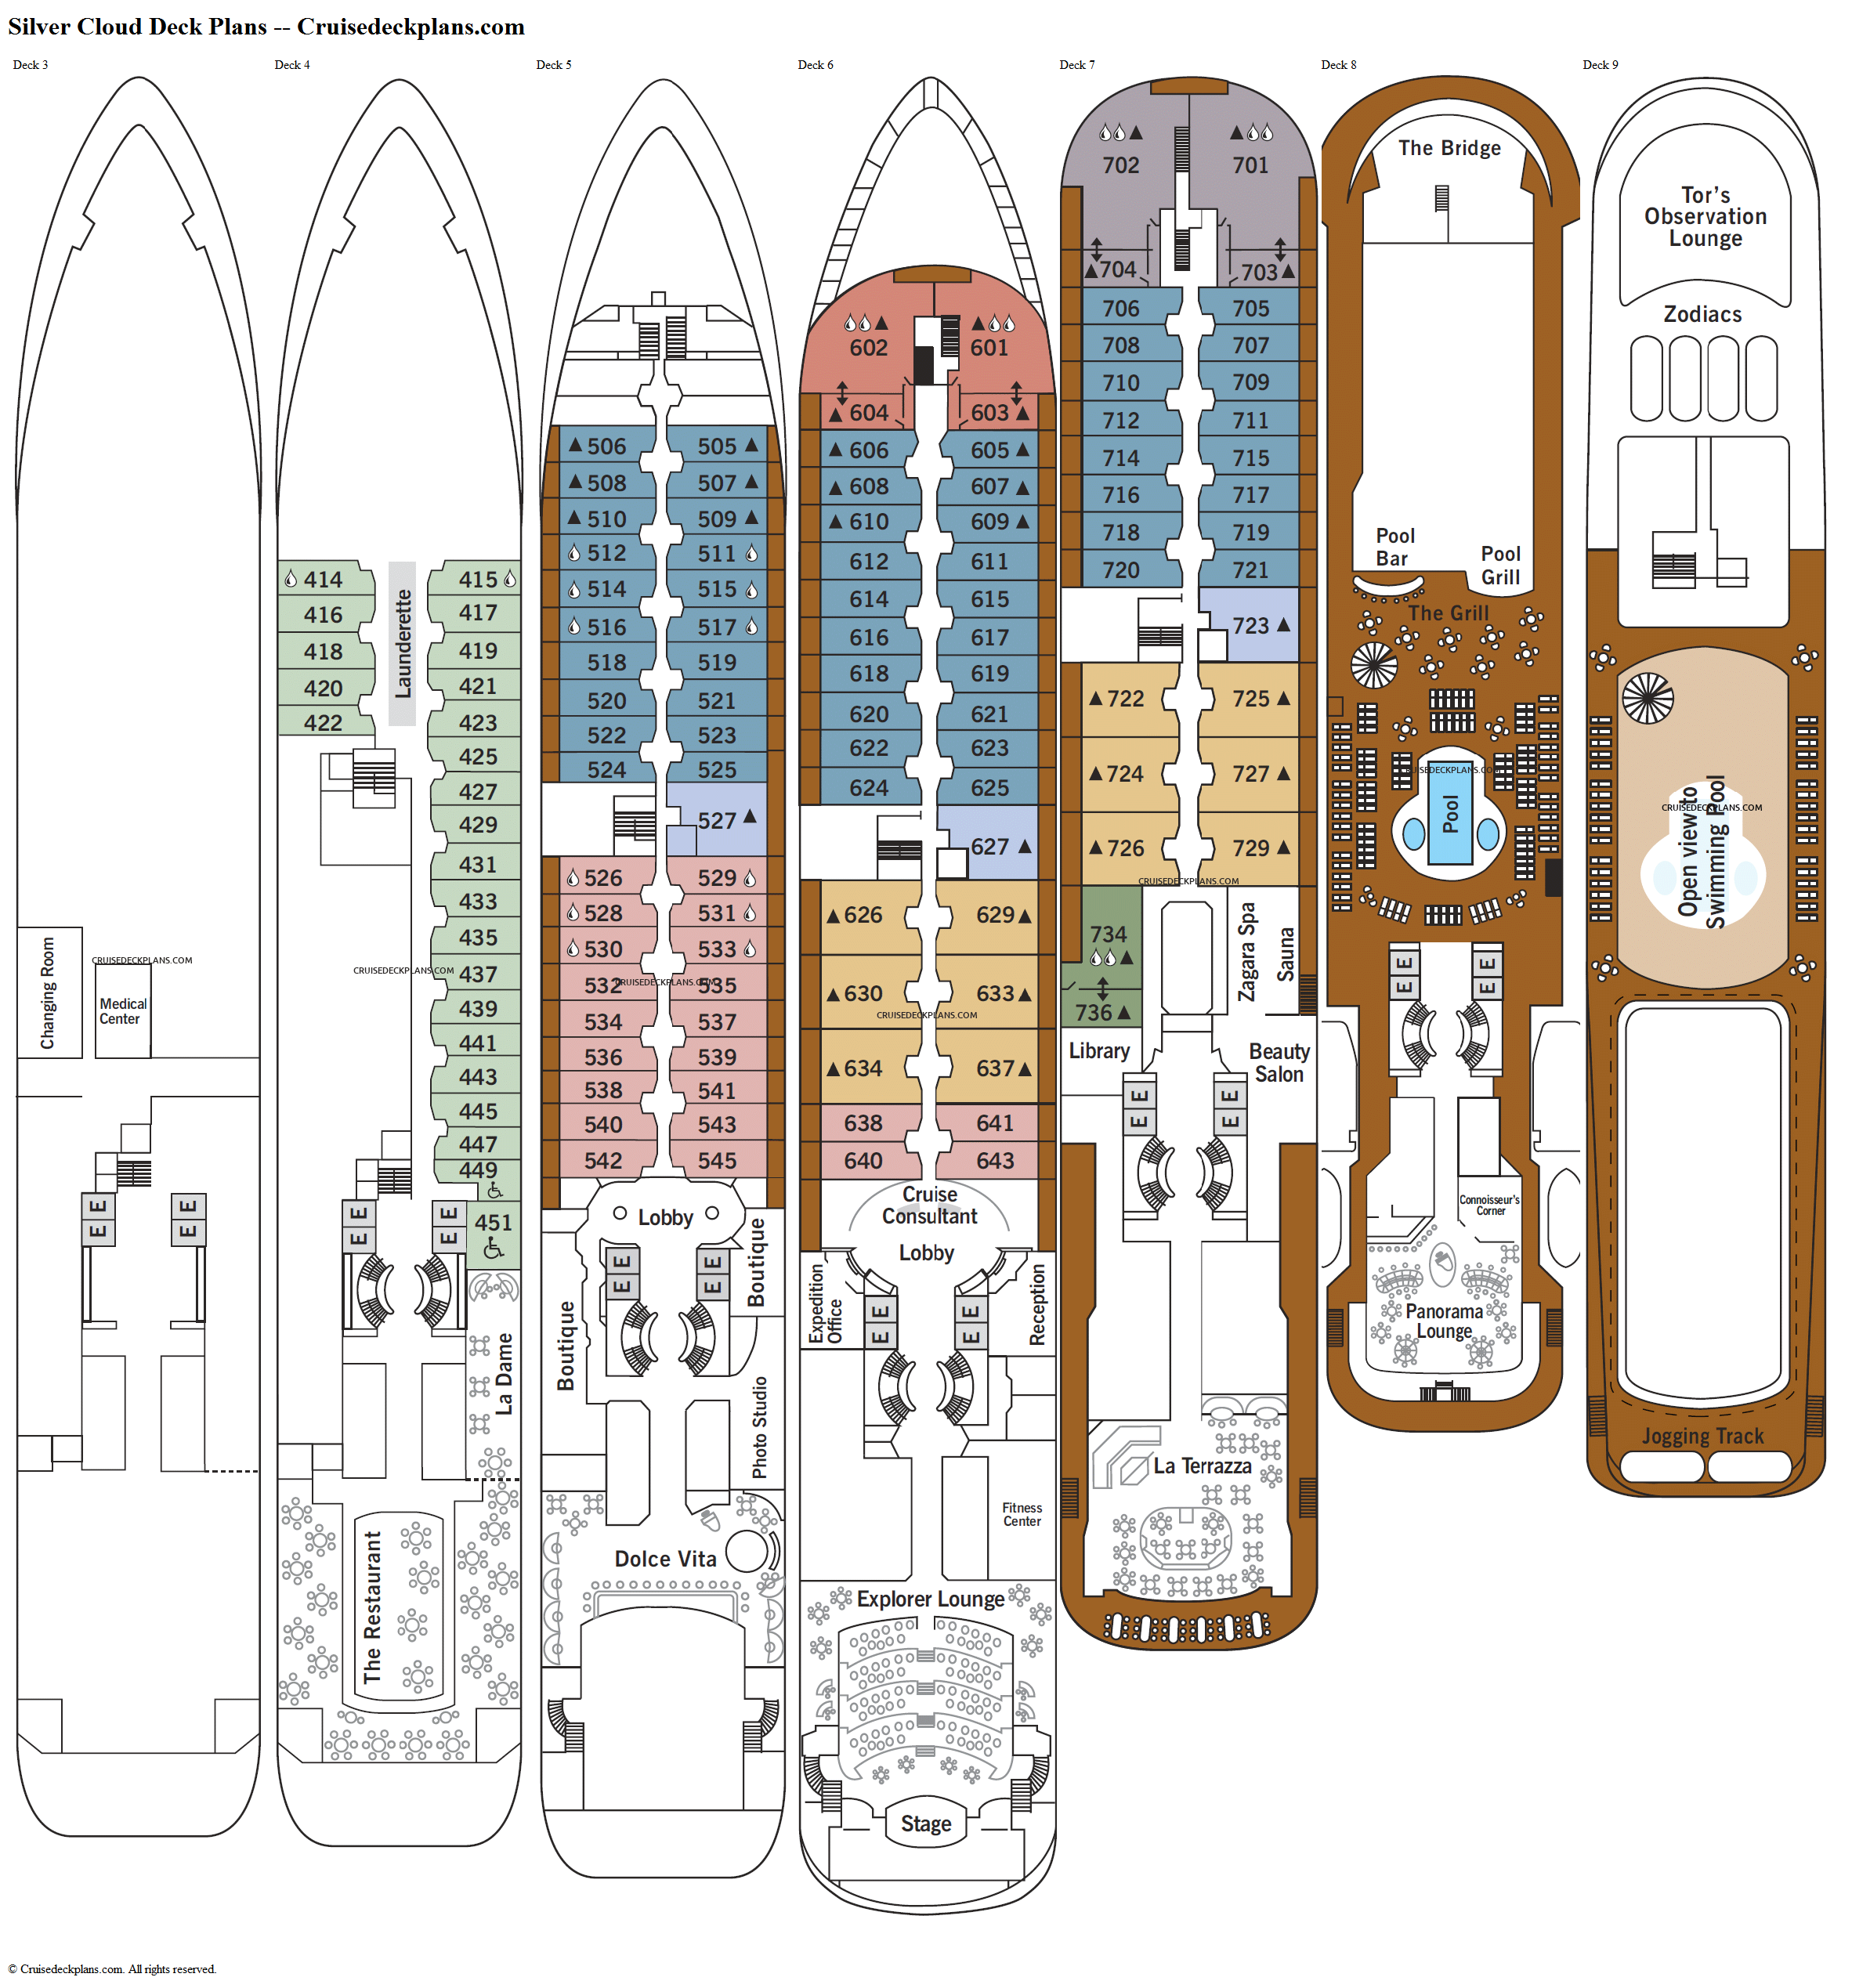 Silver Cloud deck plans image